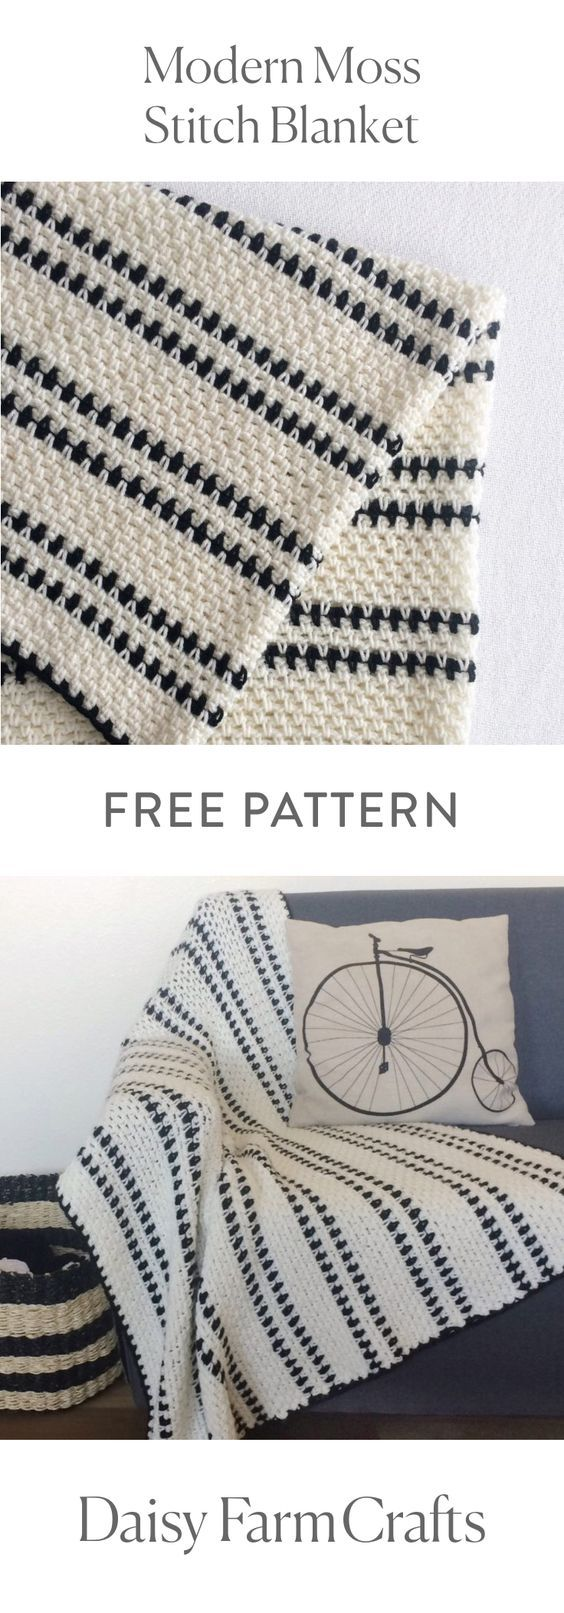 FREE PATTERN Crochet Modern Moss Stitch Blanket by Daisy Farm Crafts ...